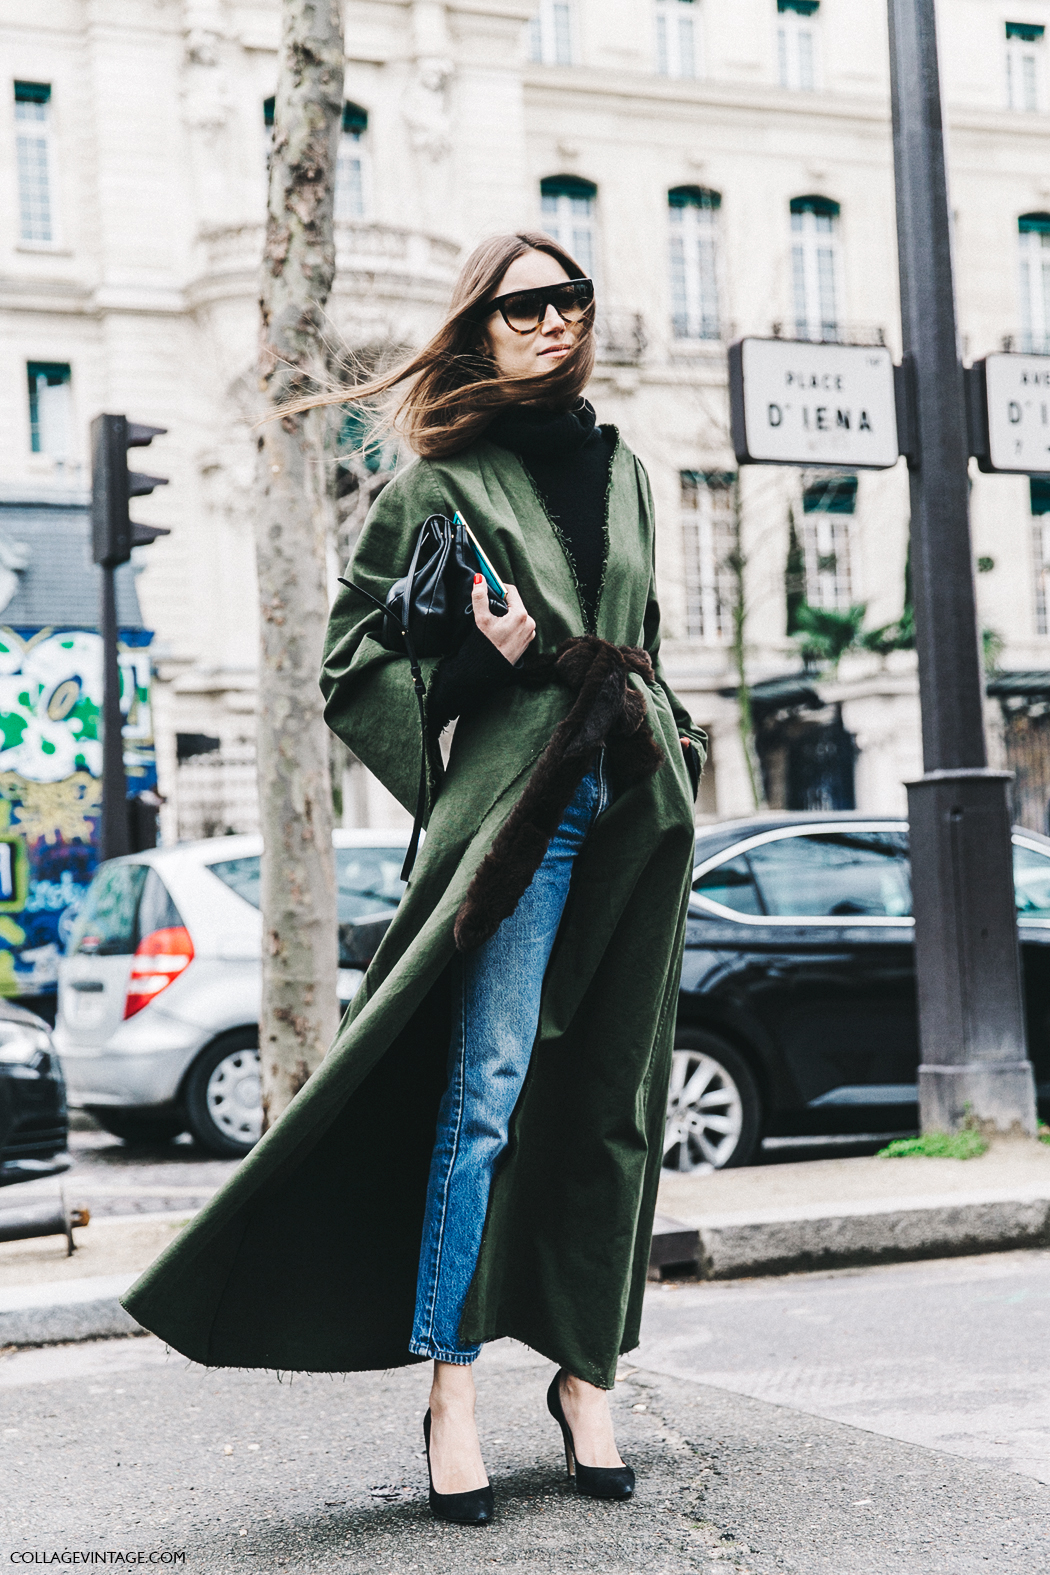 PFW-Paris_Fashion_Week_Fall_2016-Street_Style-Collage_Vintage-Miu_Miu-giorgia_Tordini-The_Attico-5